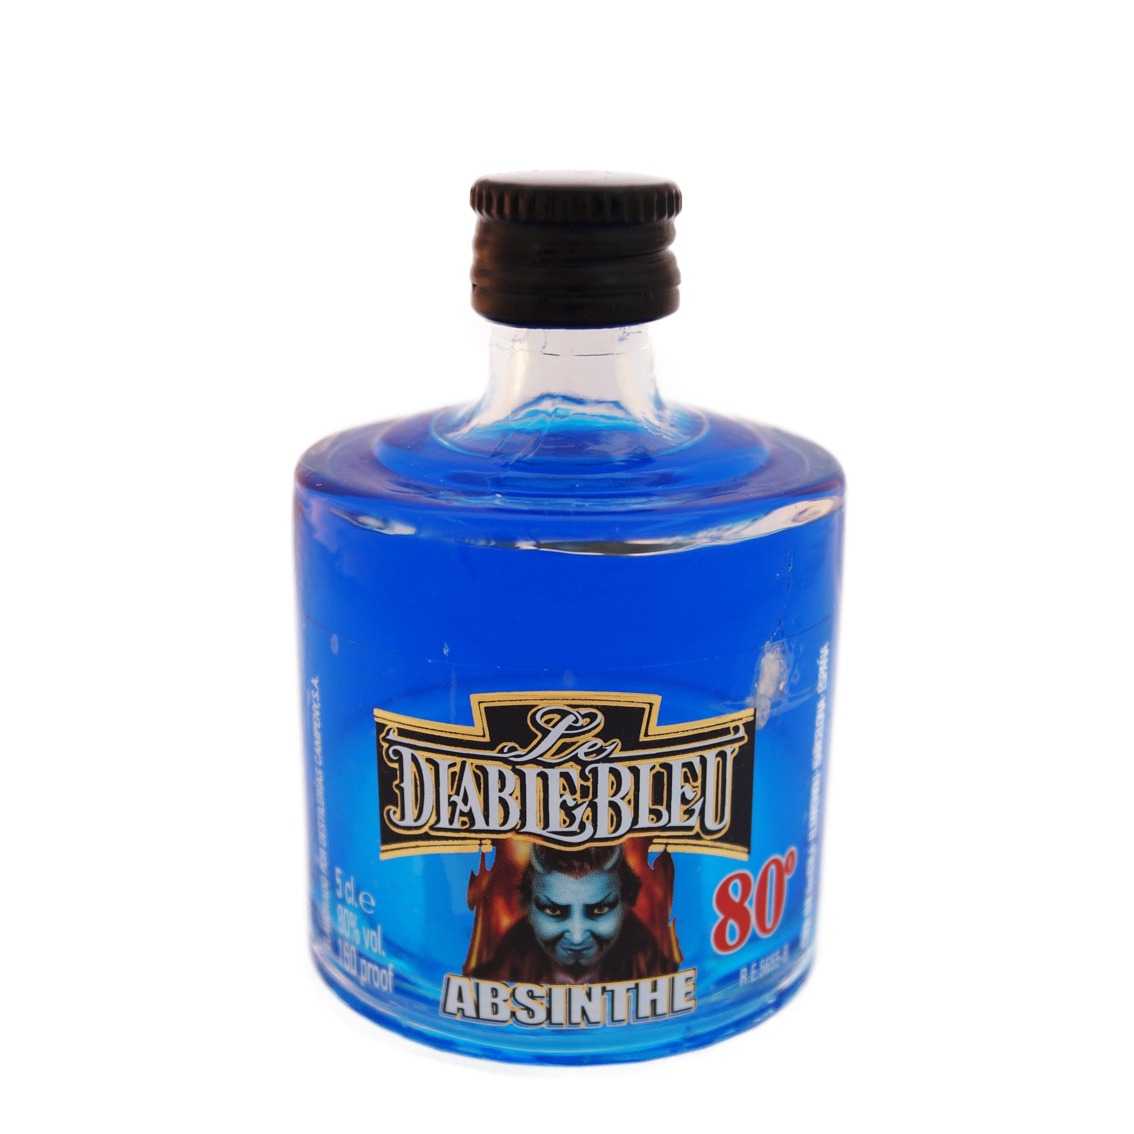 ABSINTH-LE-DIABLE-BLEU-80